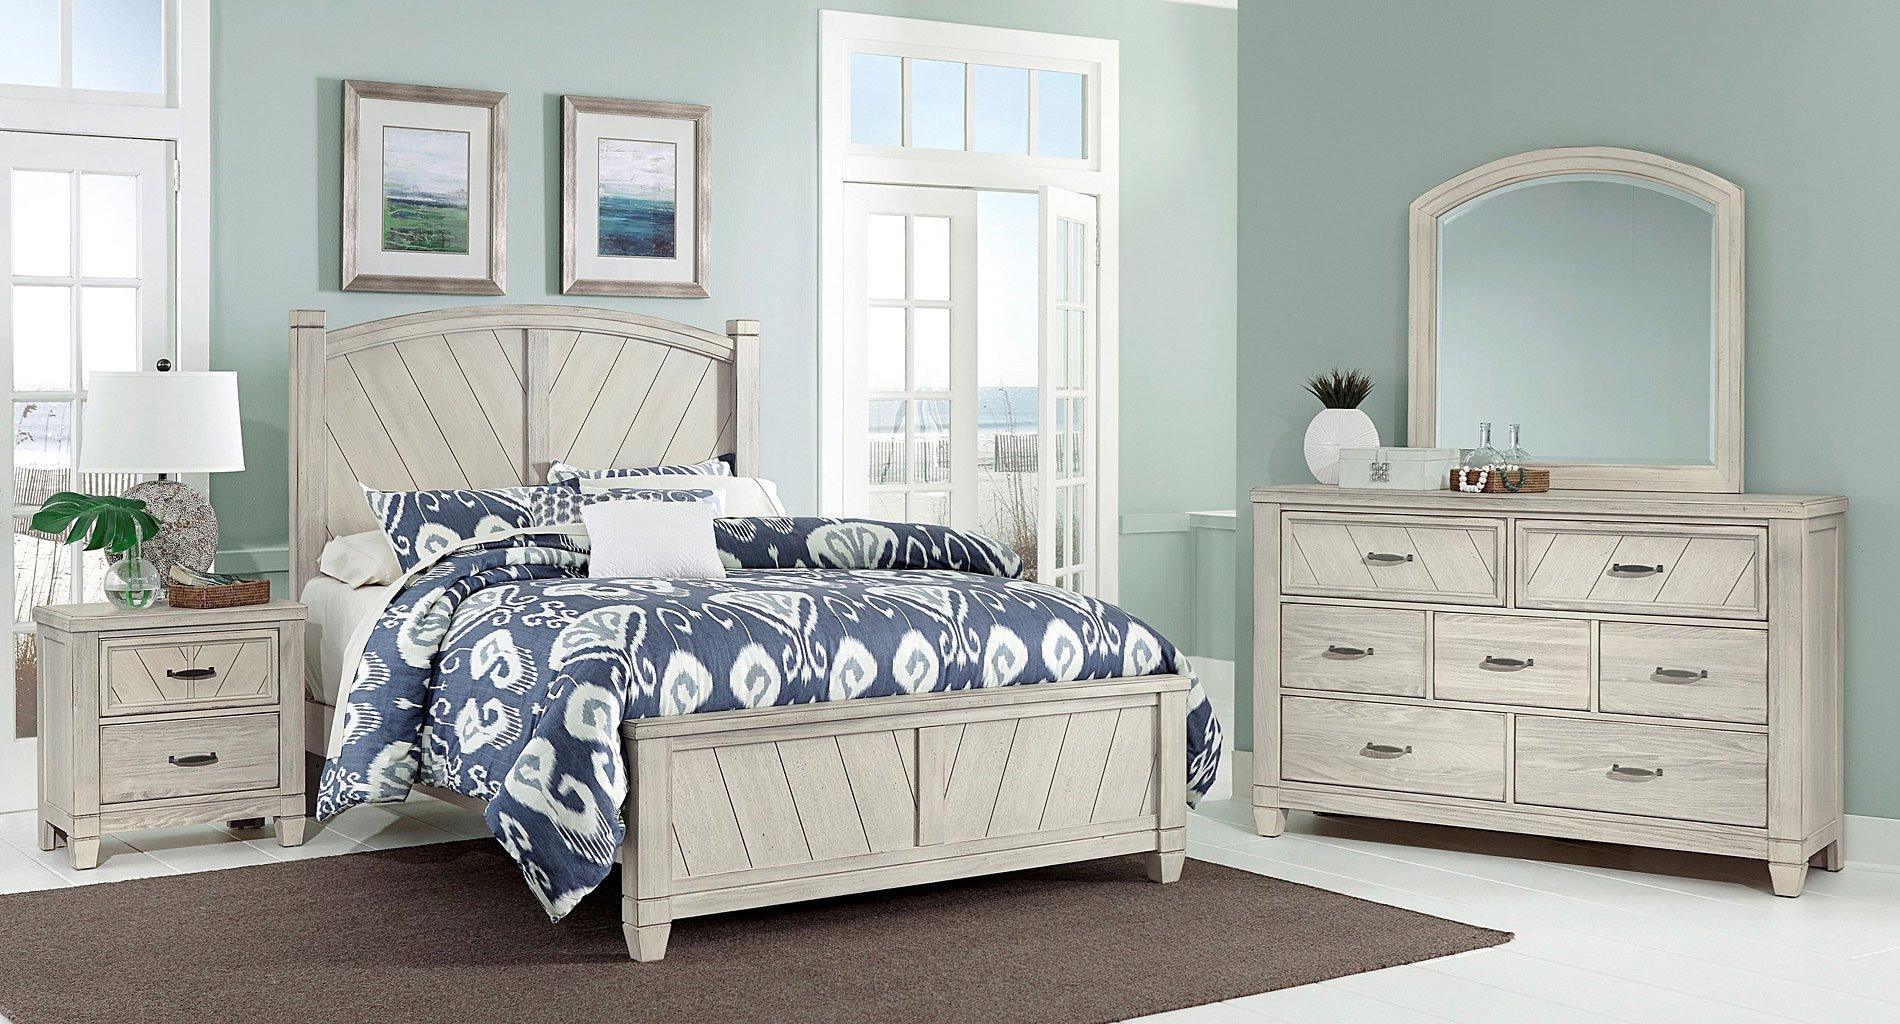 rustic cottage panel bedroom set white vaughan bassett furniture cart. Black Bedroom Furniture Sets. Home Design Ideas